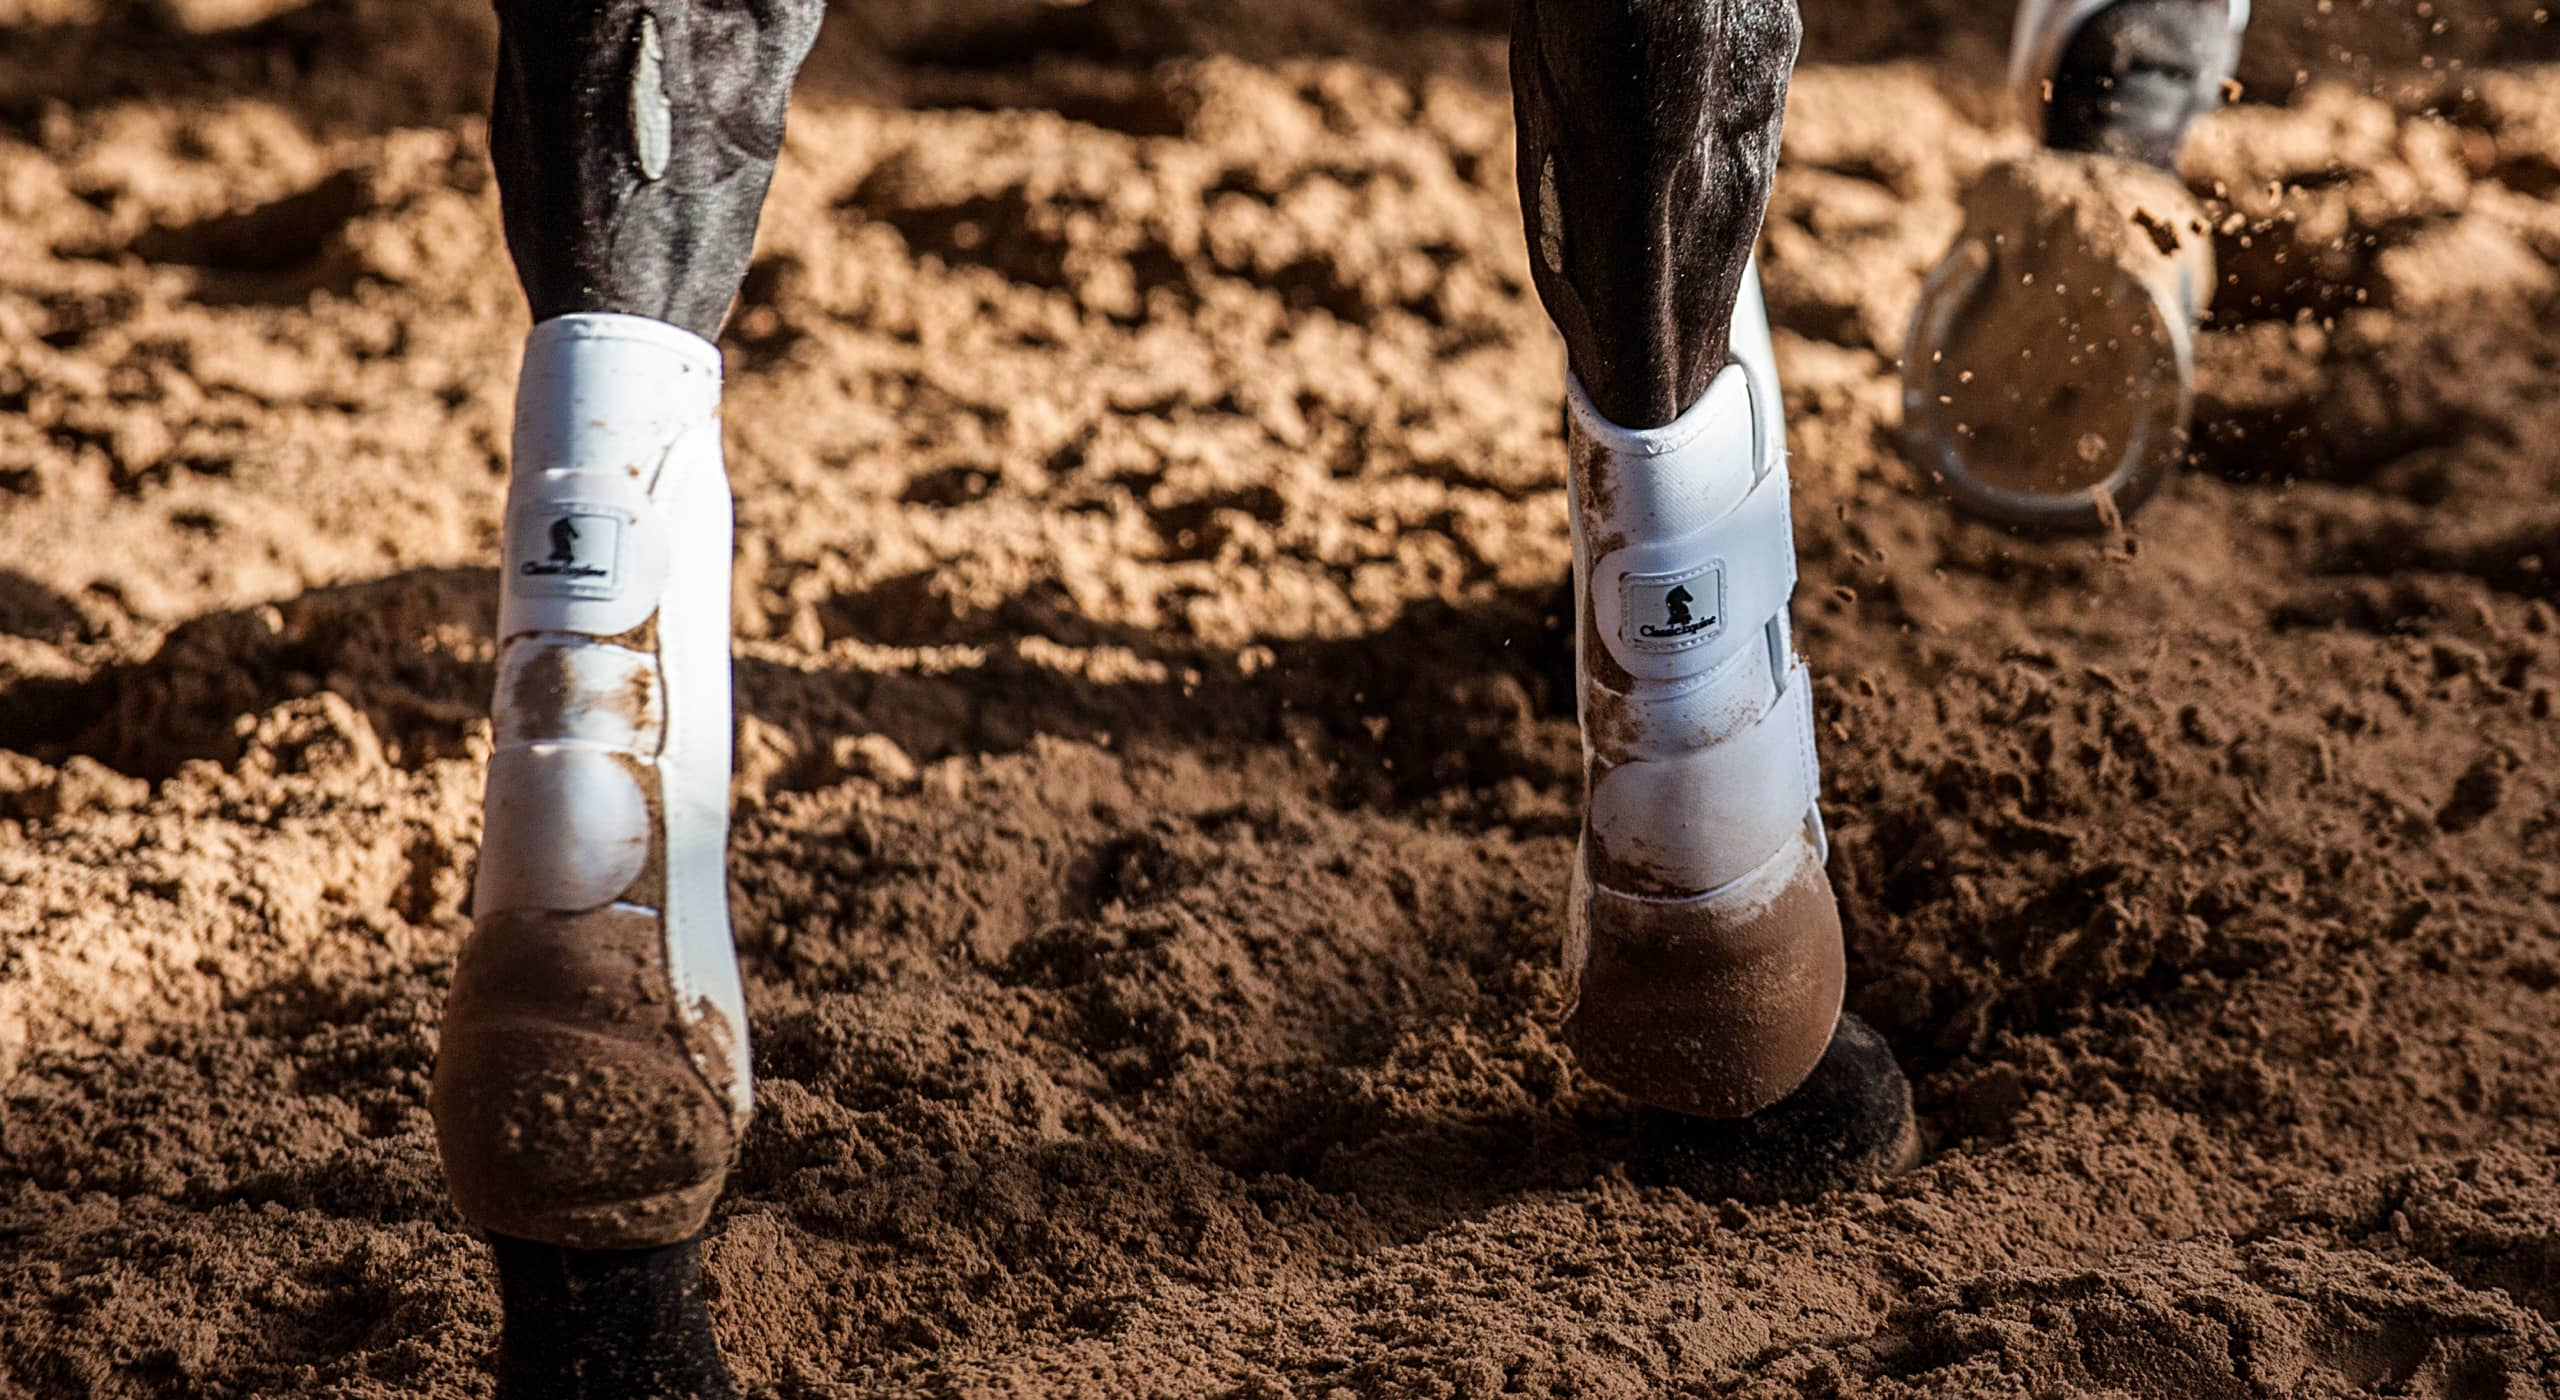 Classic Equine provides high quality equine boots that are protective for any discipline